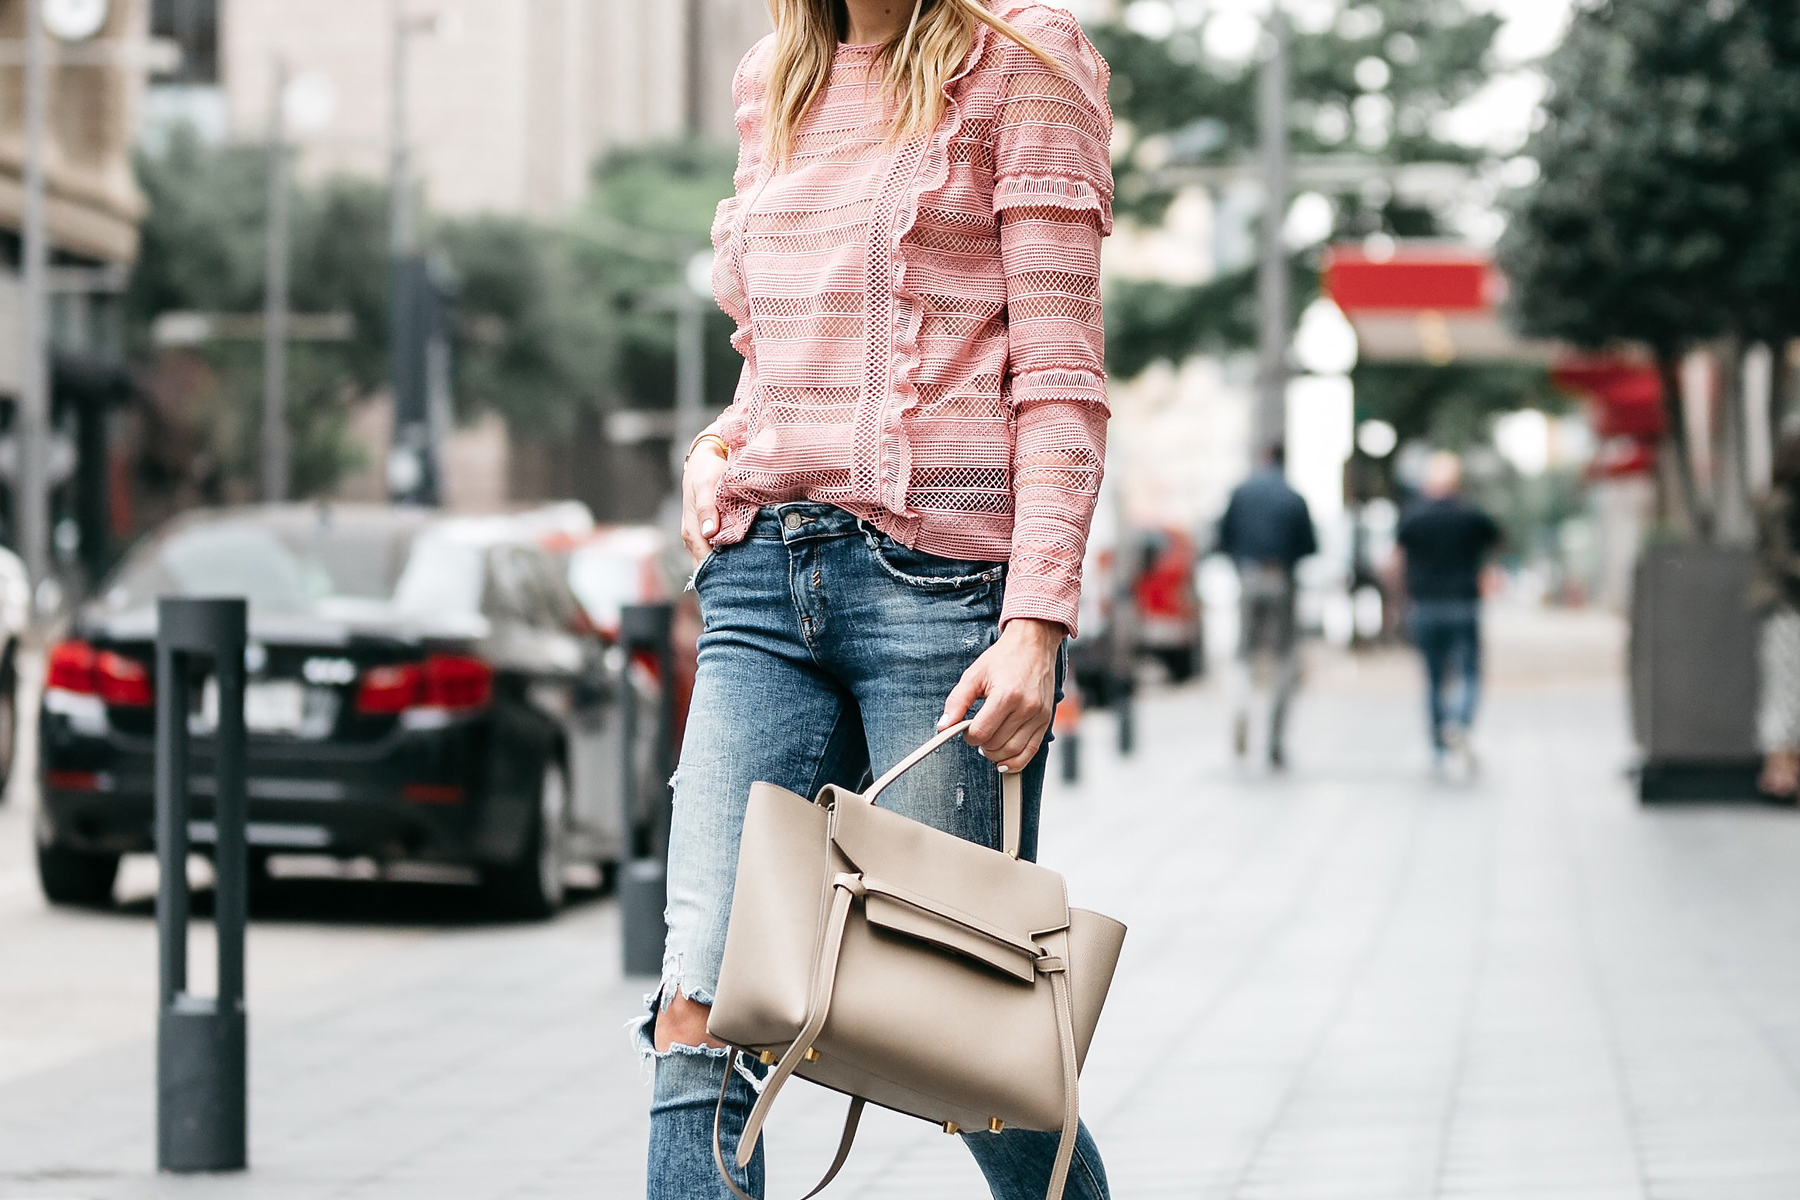 Fashion Jackson, Dallas Blogger, Fashion Blogger, Street Style, Self-Portrait Pink Lace Top, Denim Ripped Skinny Jeans, Christian Louboutin Pigalle Nude Pumps, Celine Belt Bag, Karen Walker Sunglasses